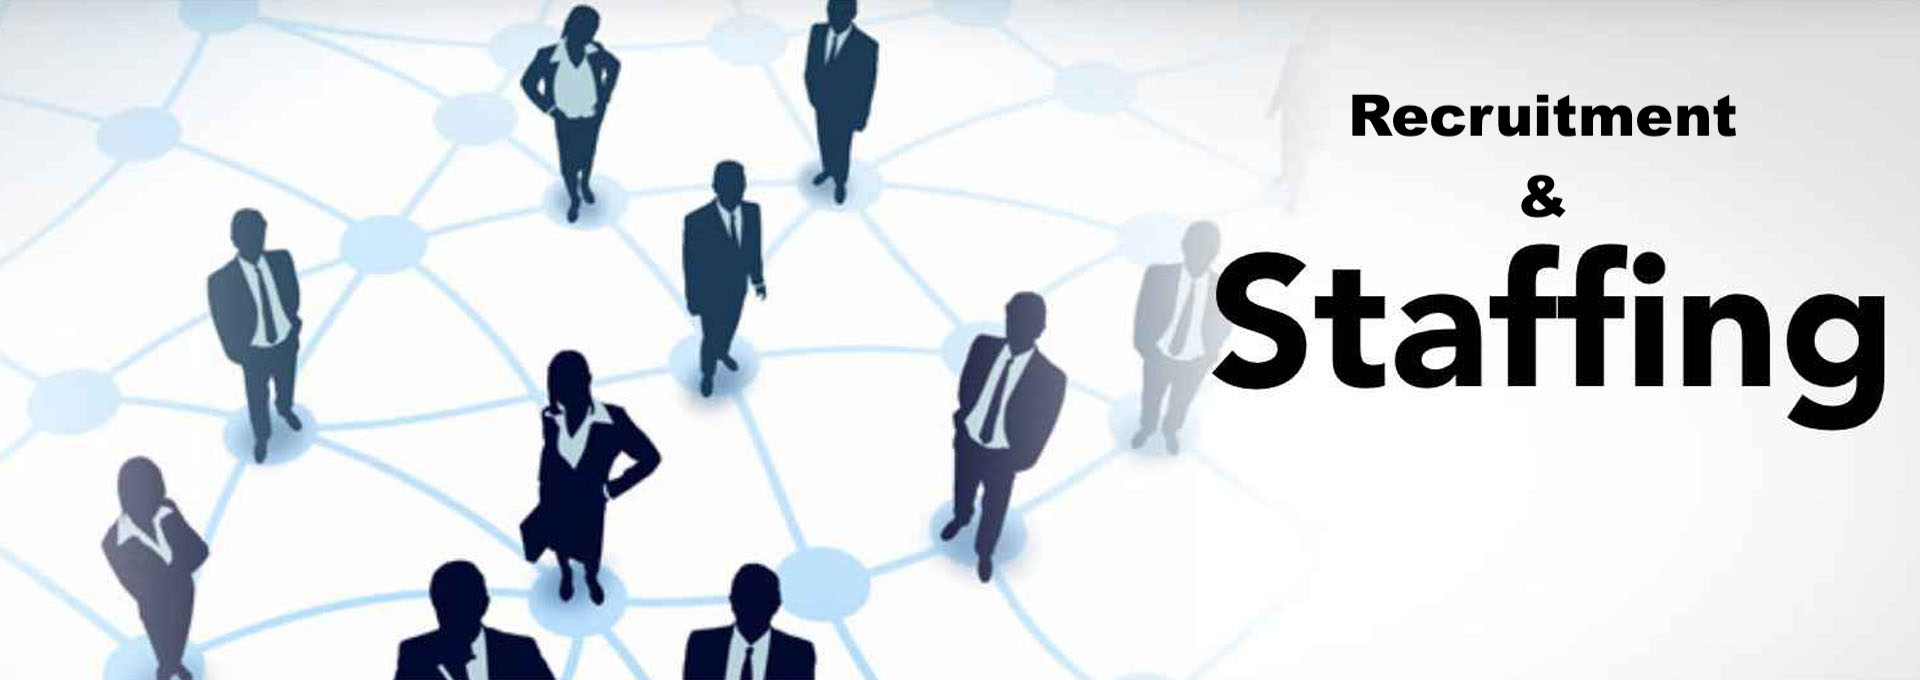 How To Select Consulting, Recruitment And Staffing Solutions Agency For Your Business?